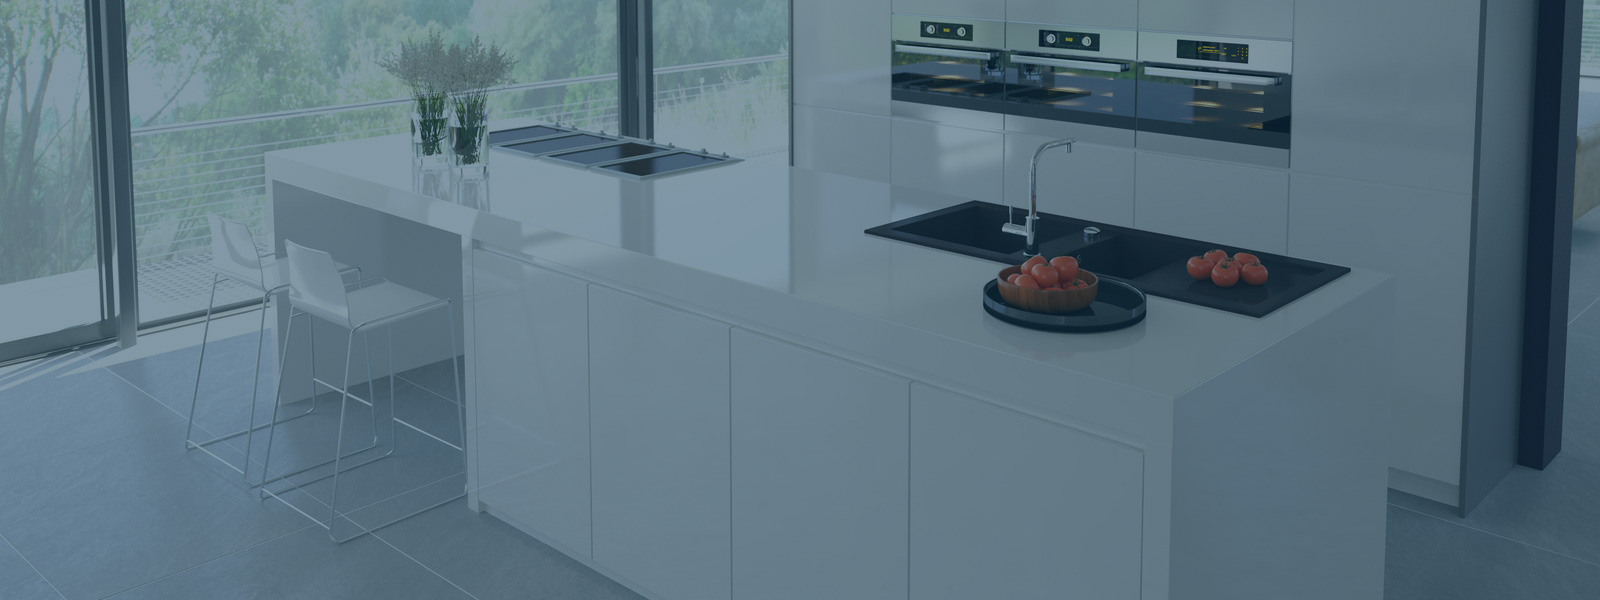 corian-kitchen-worktops